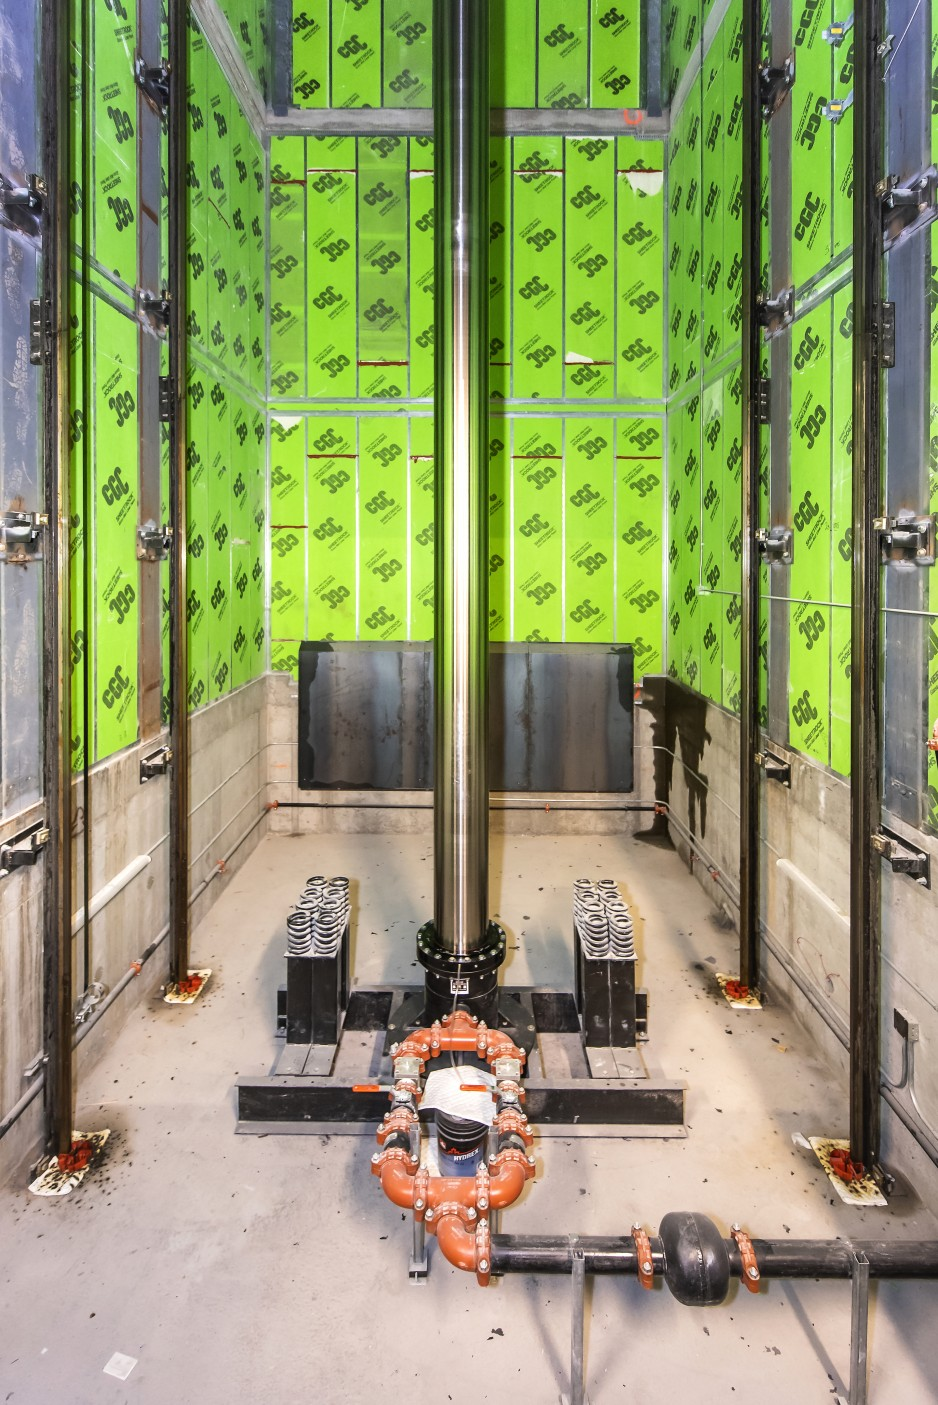 An inside view of the elevator shaft, which is a rectangular enclosure with bright green walls and a massive, steel column in the middle.